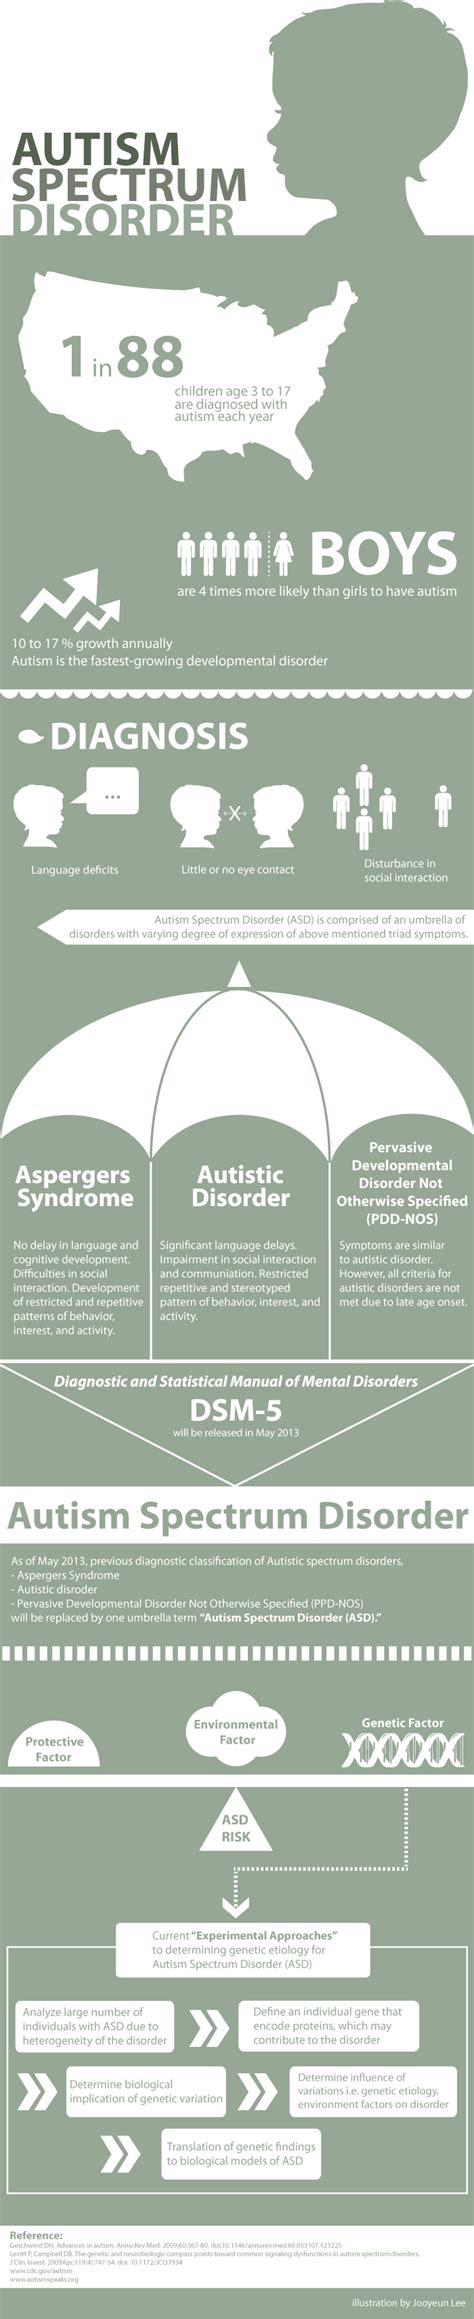 Famous People Autism Spectrum Disorders - HRF